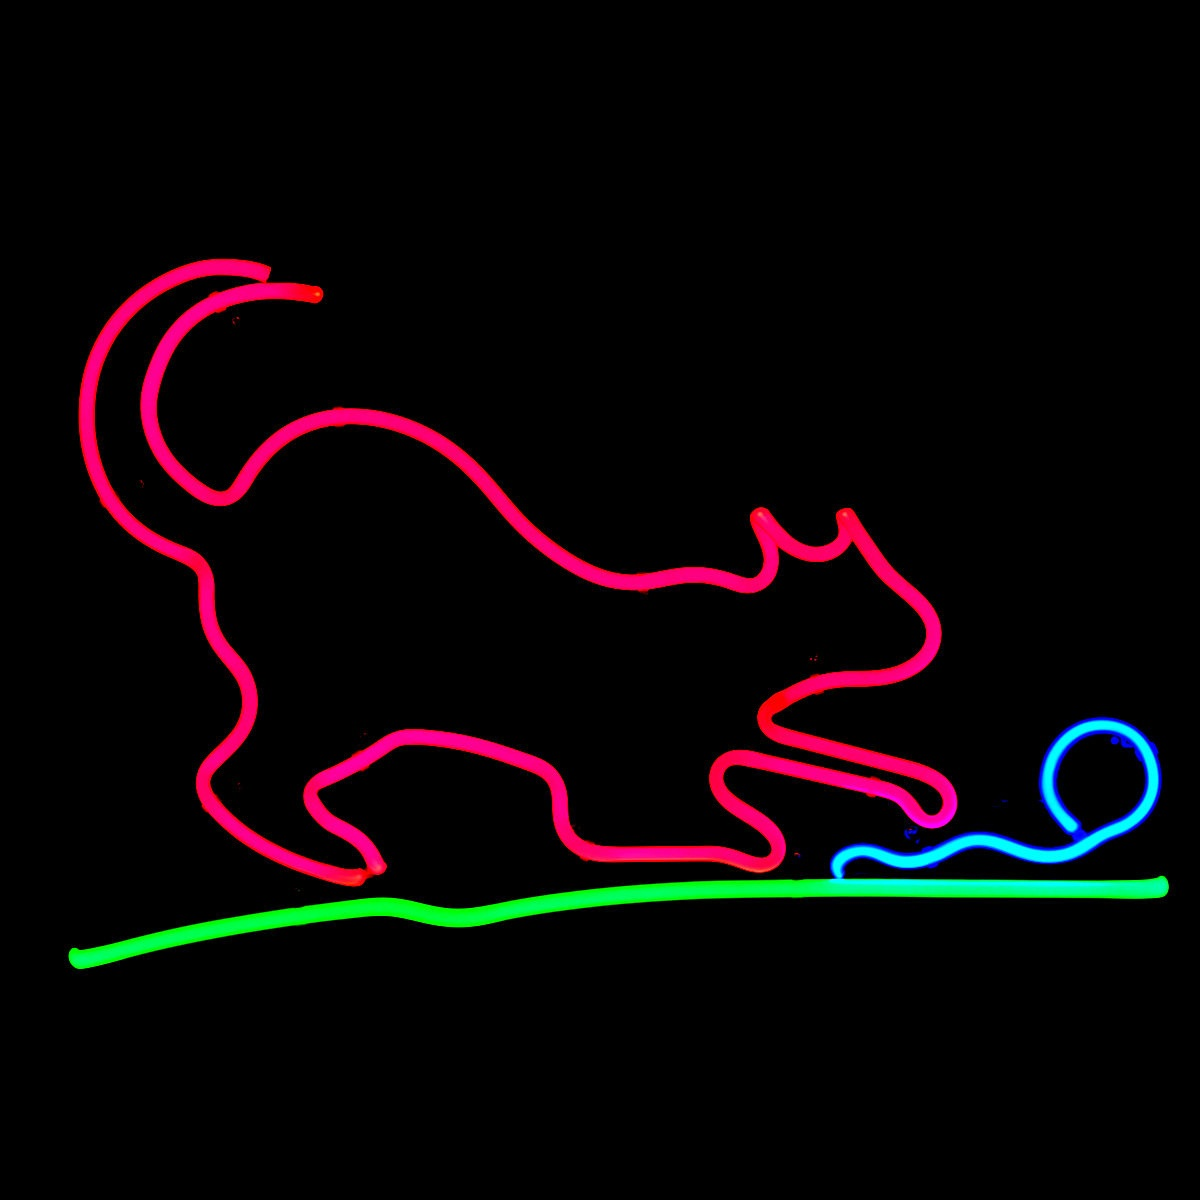 Cat Neon Light Sculpture by John Barton - Neon Glass Sculptor - BartonNeonMagic.com